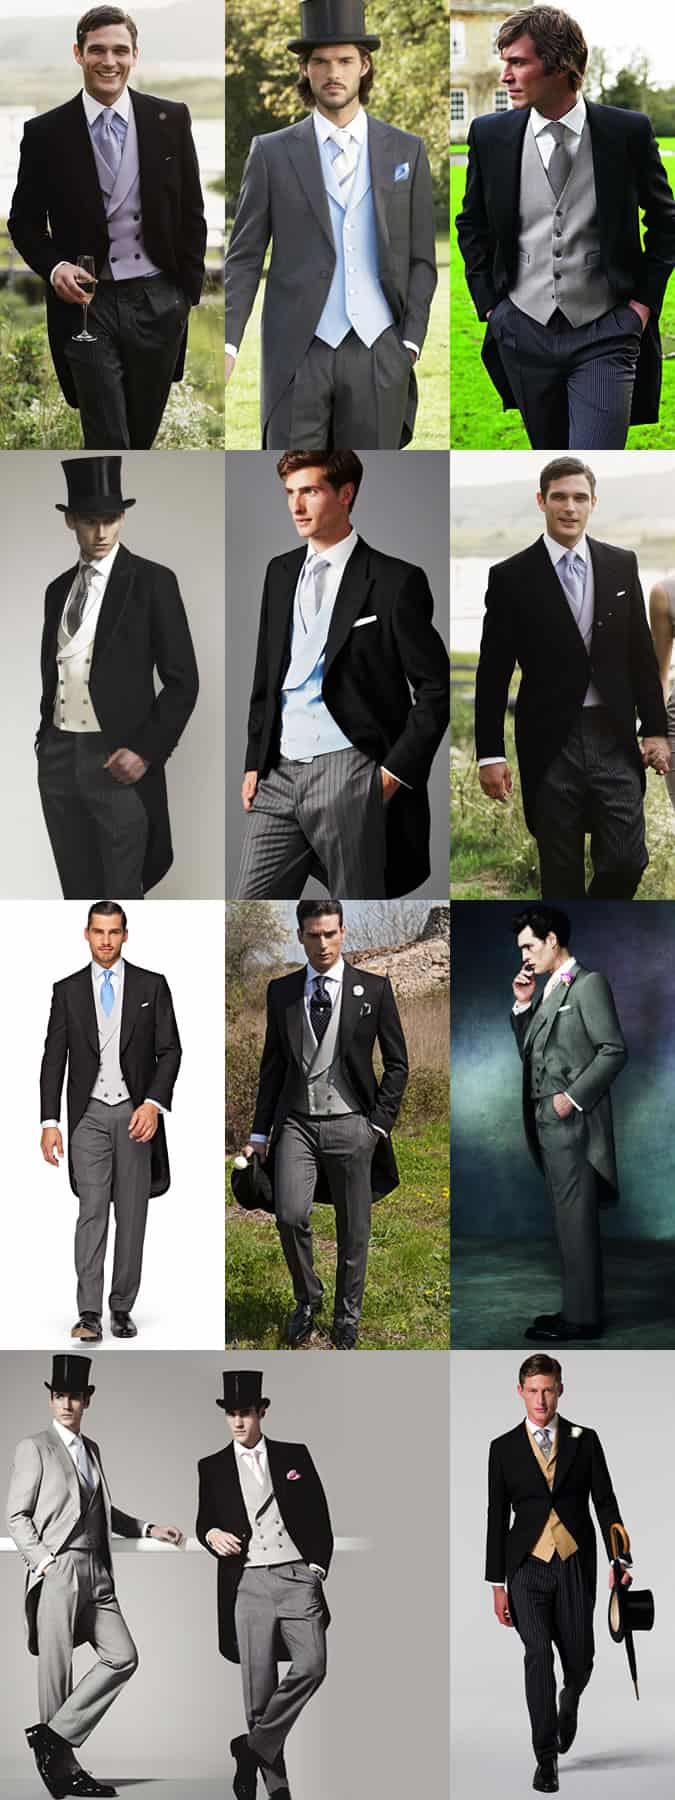 Men's Morning Coats and Tails Outfit Inspiration Lookbook